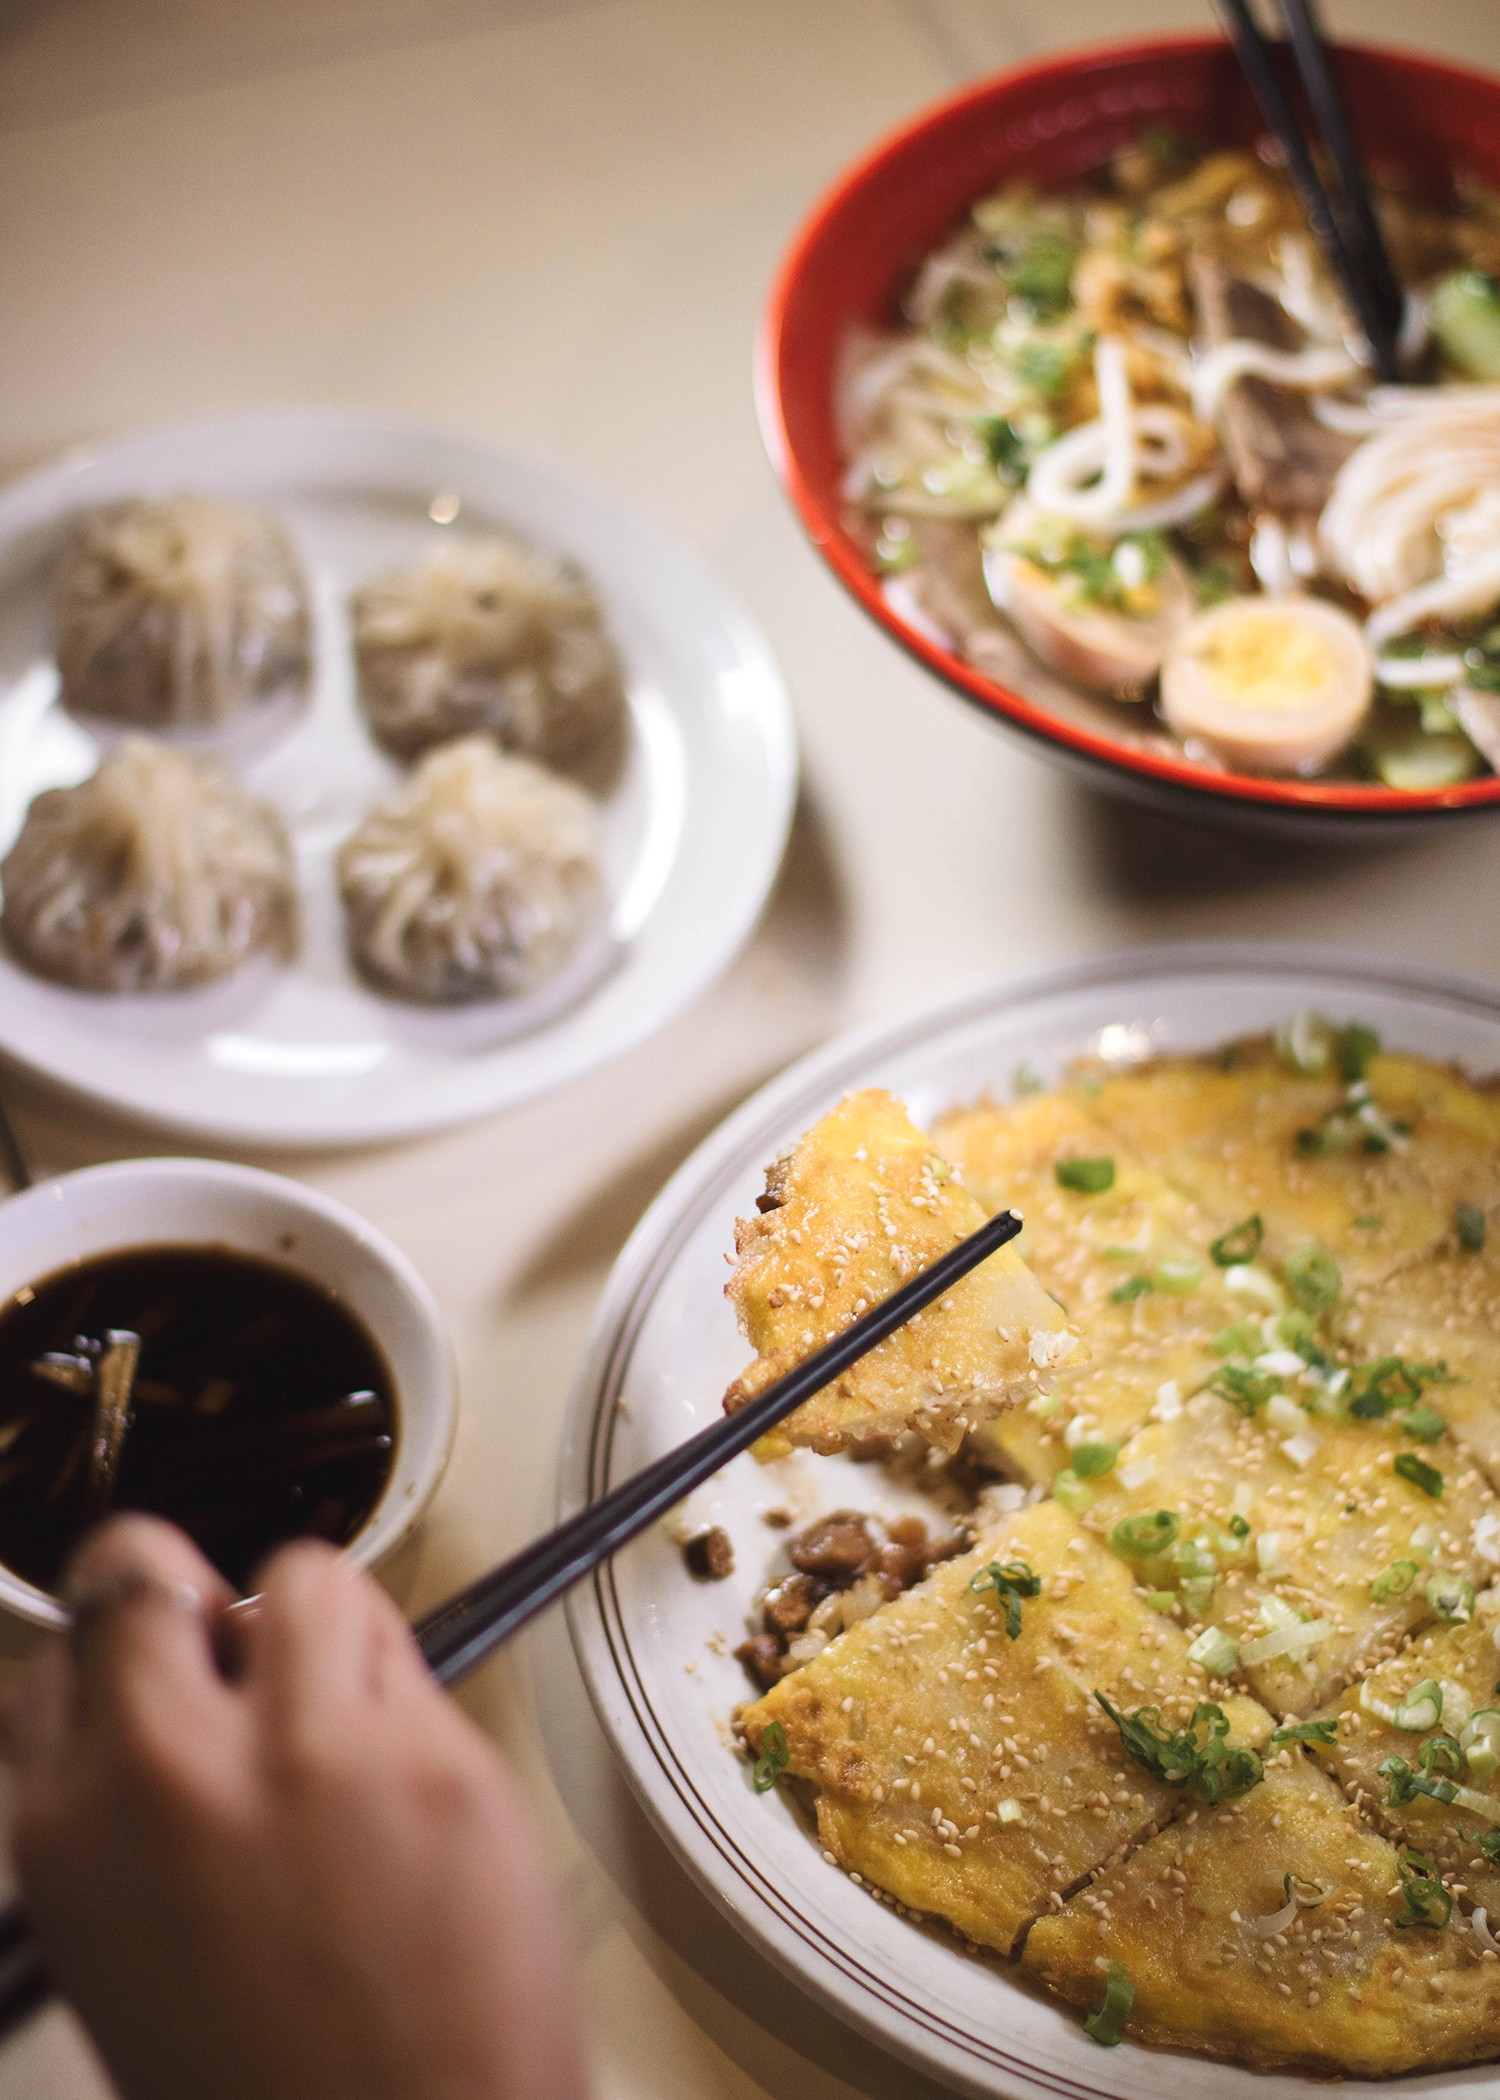 PanPan Noodle Bar | where to eat Wuhan Chinese noodles in Toronto | best Toronto restaurants to visit | top places to eat in Toronto, Ontario | Diary of a Toronto Girl, a Canadian lifestyle blog